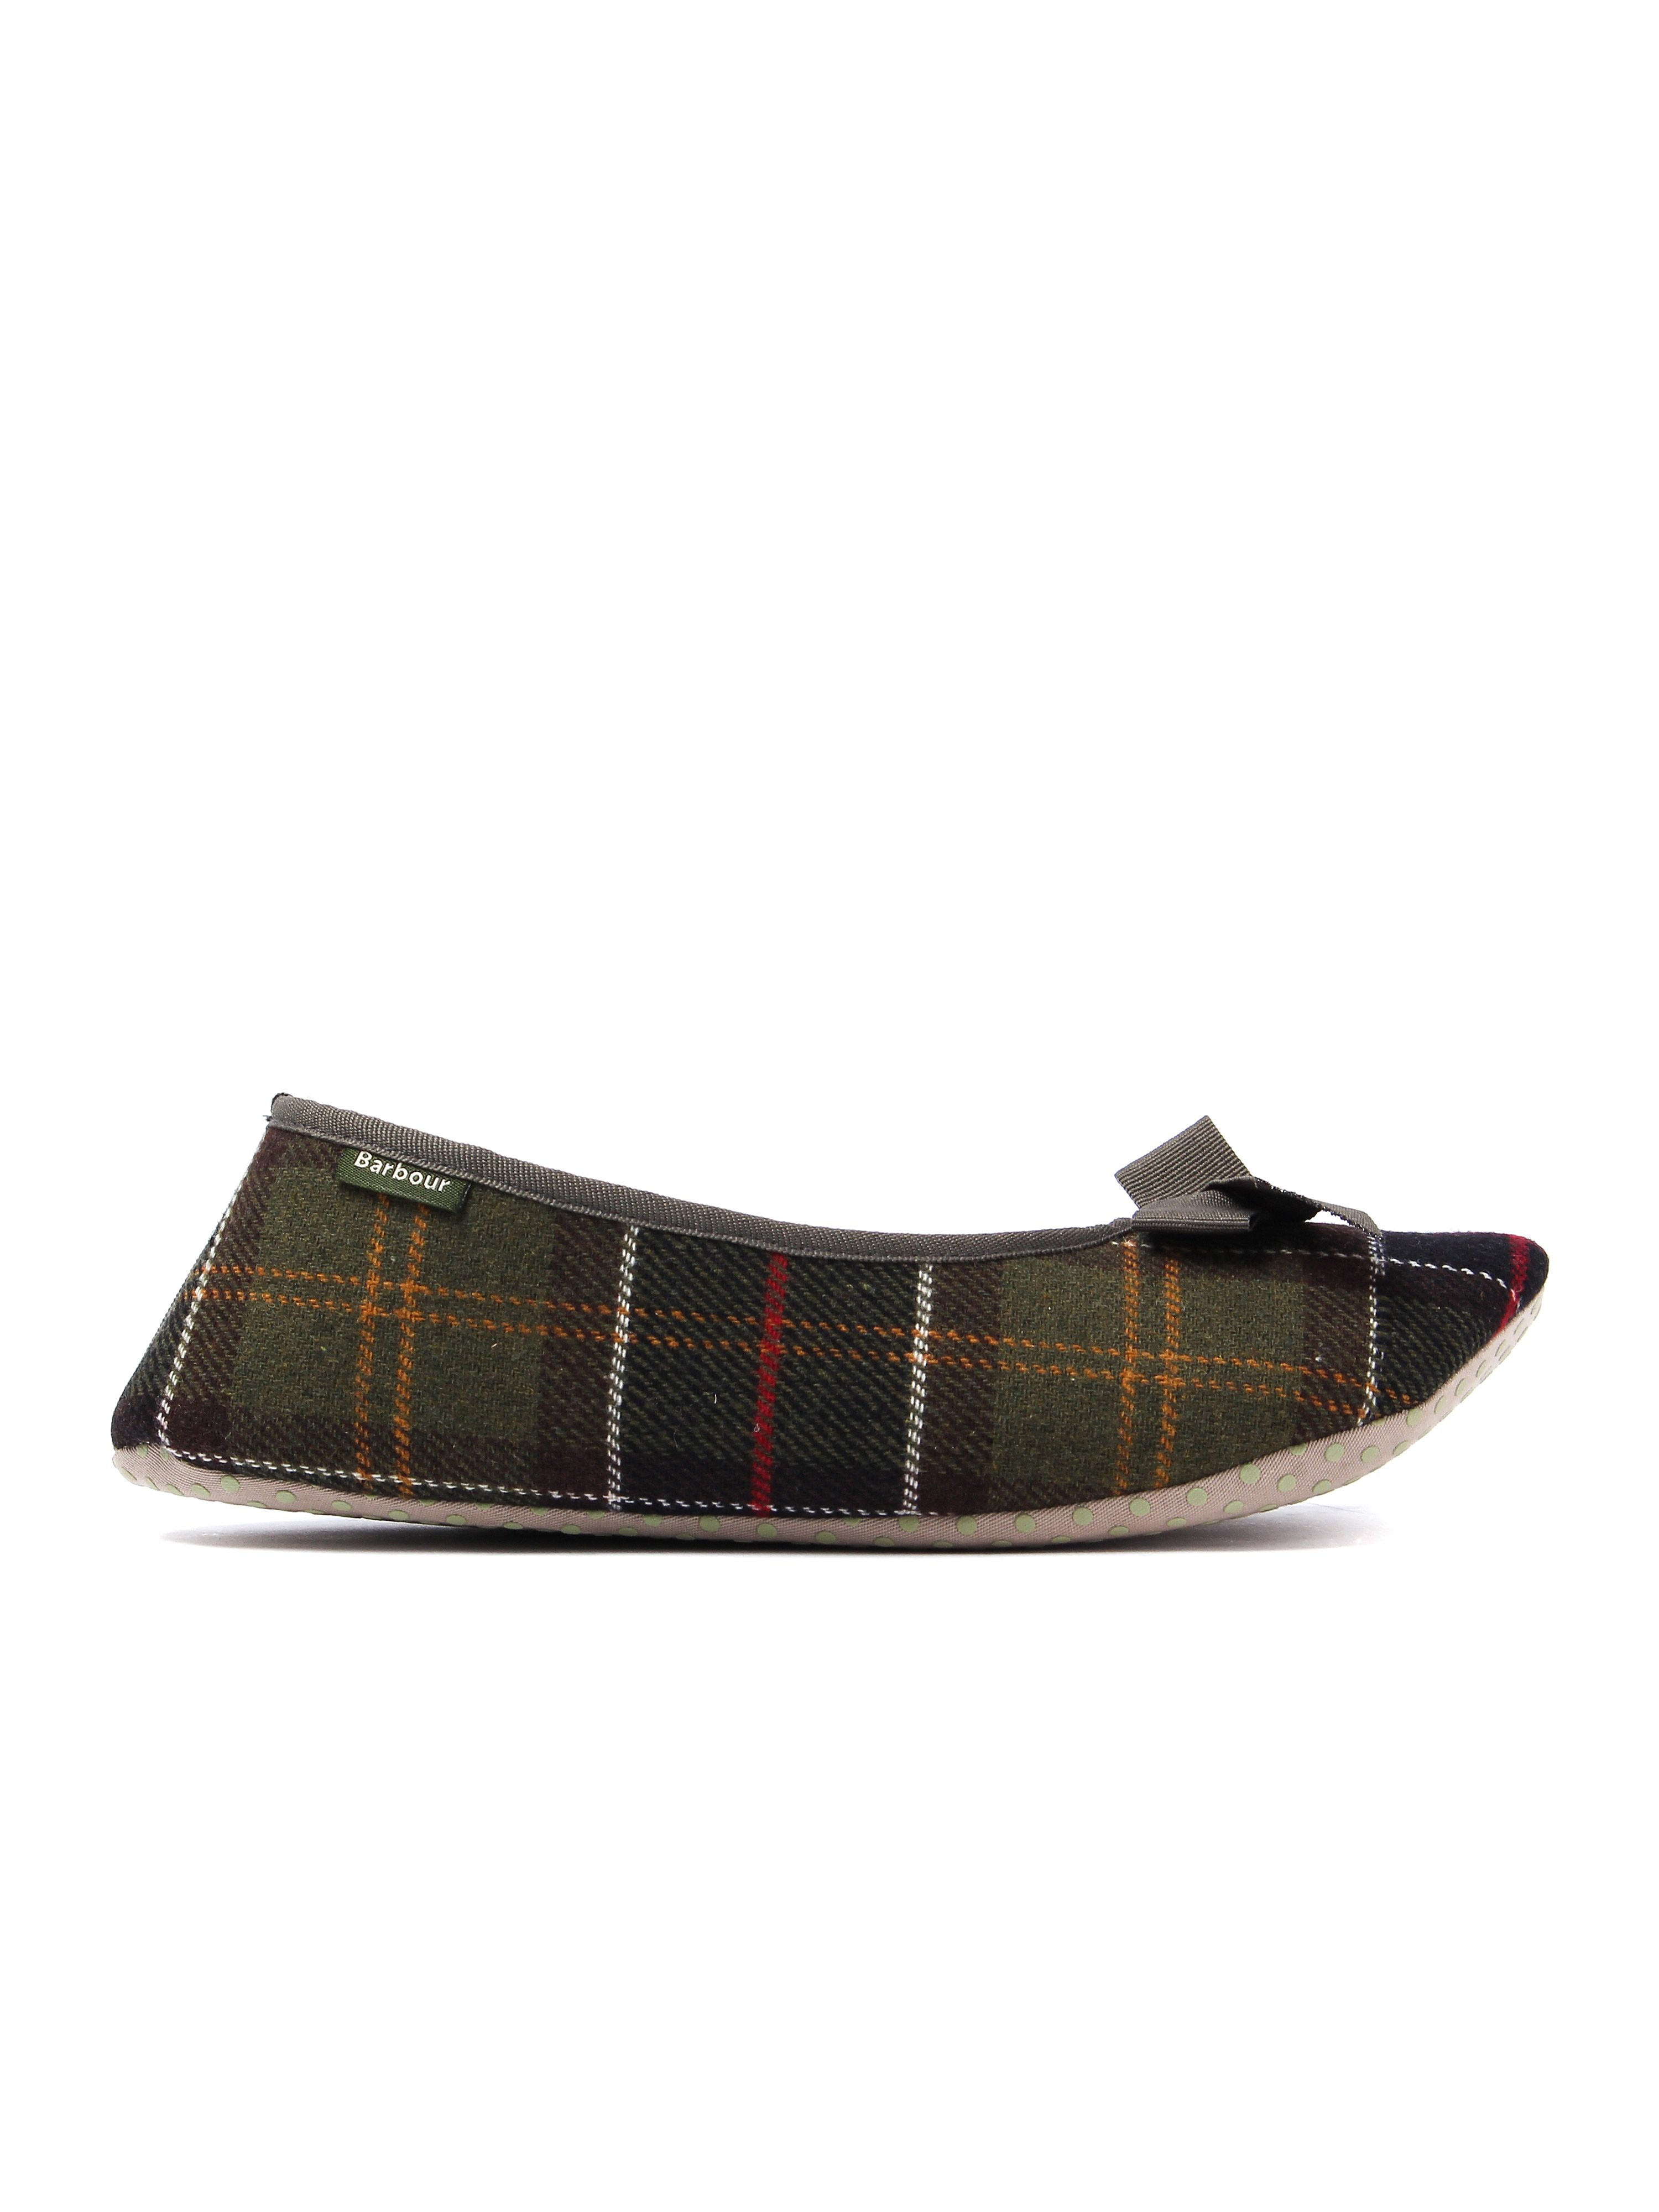 Barbour Women's Lily Tartan Ballerina Slippers - Classic